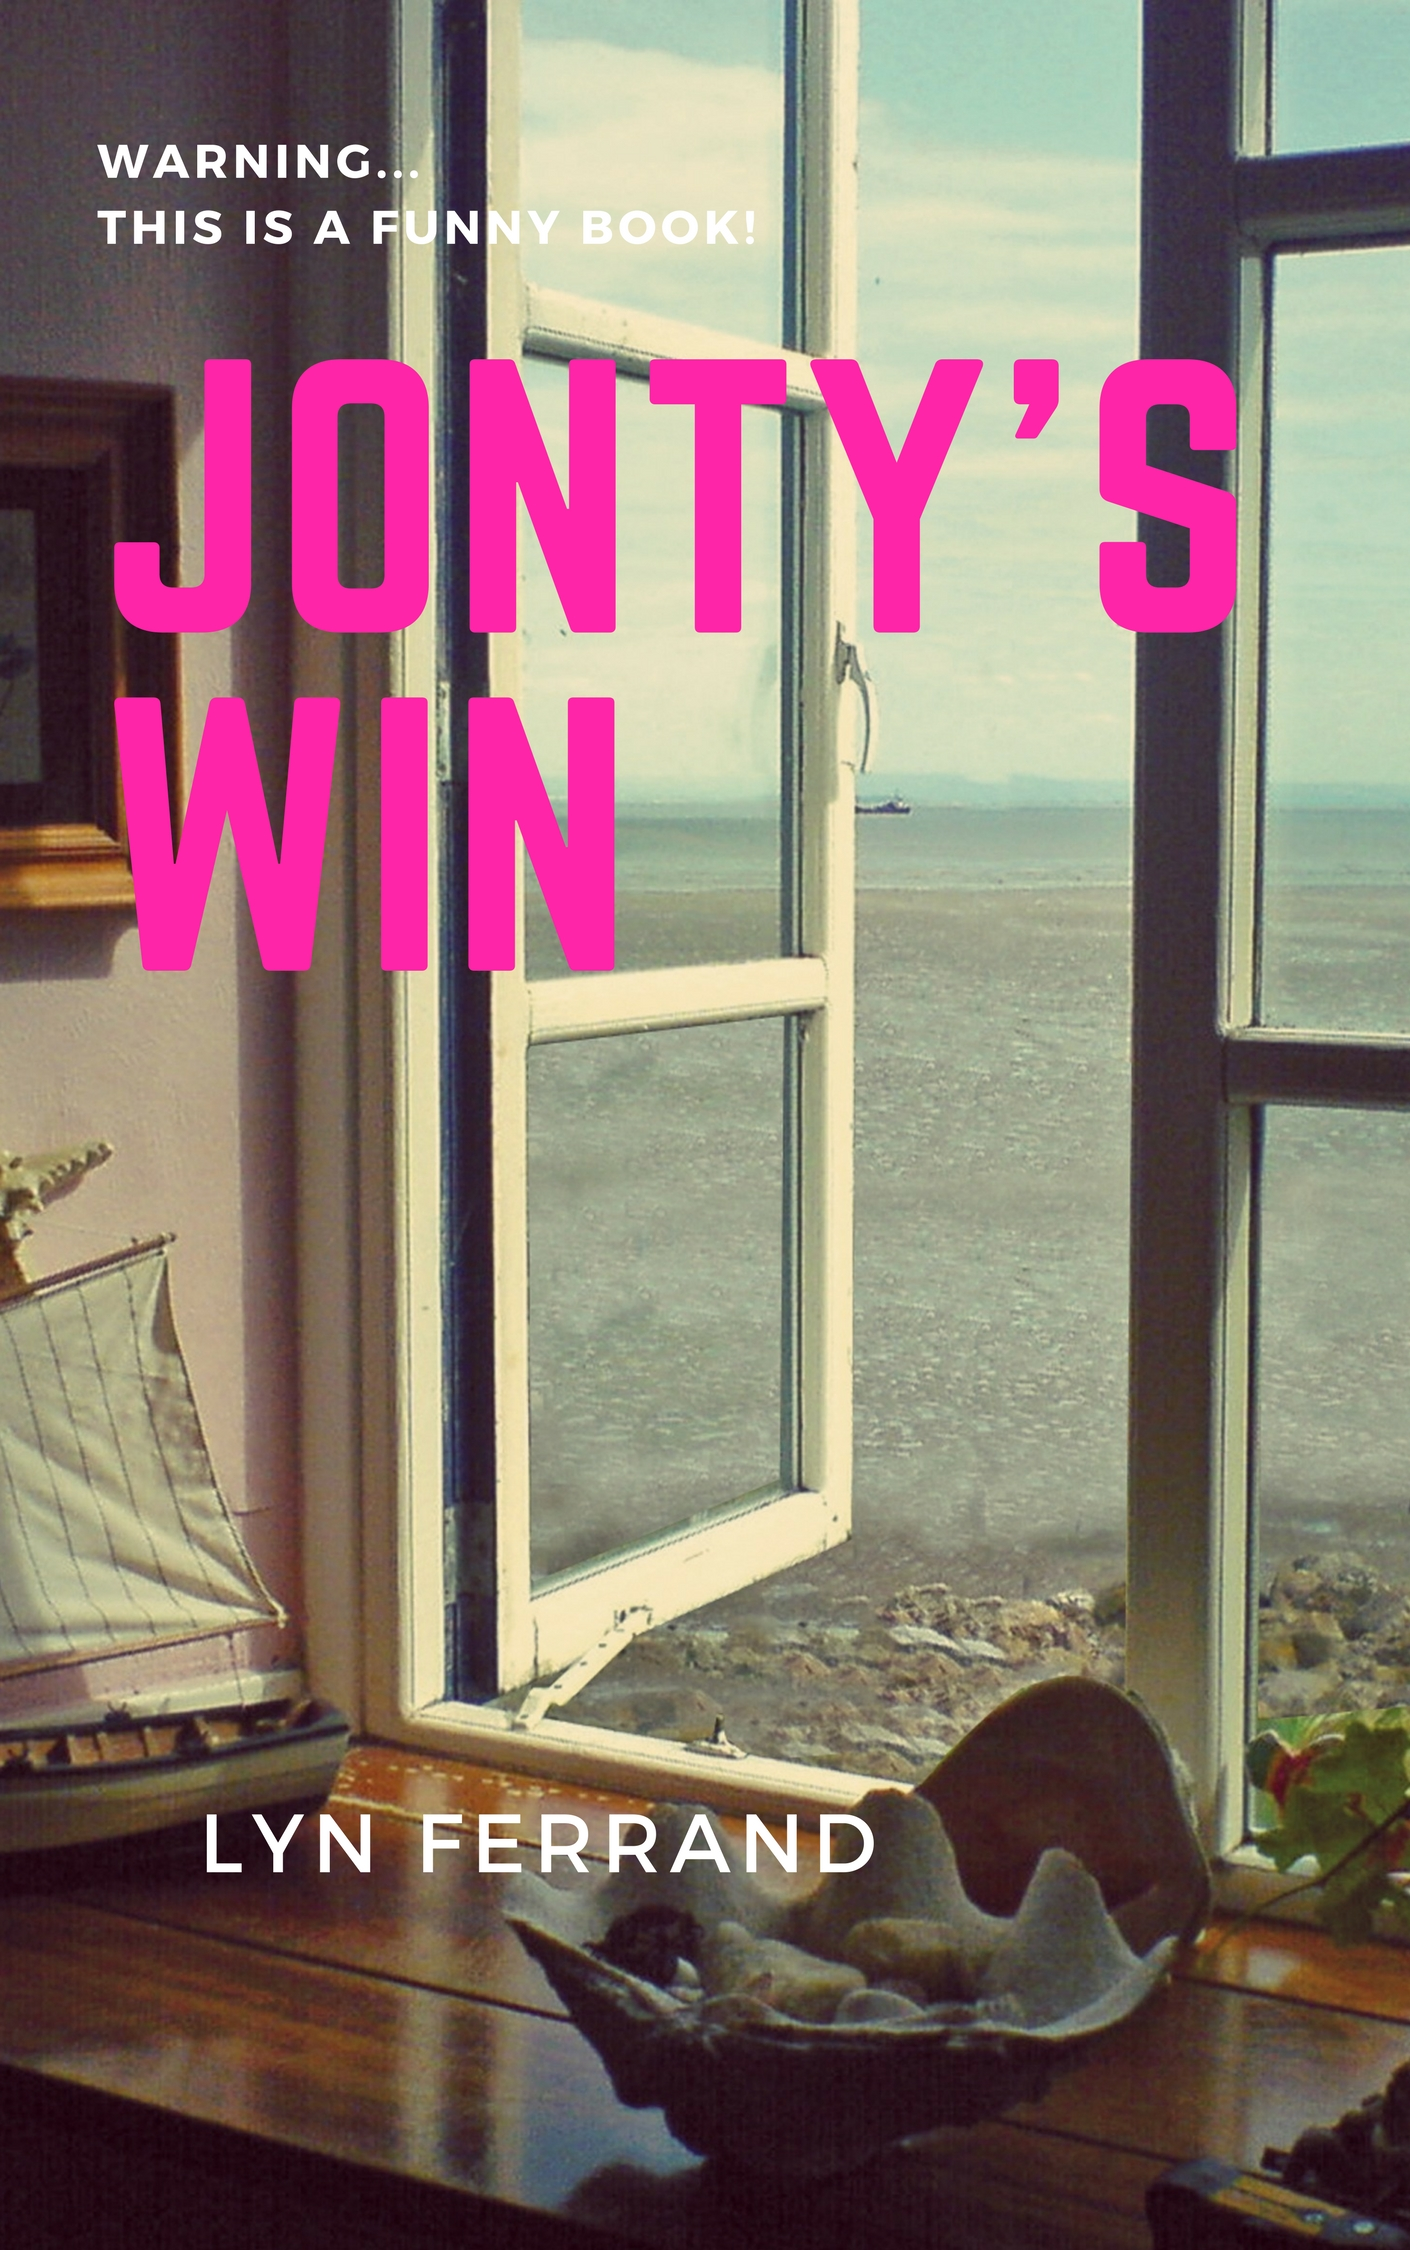 JONTY'S WIN – A NEW NOVEL BY LYN FERRAND